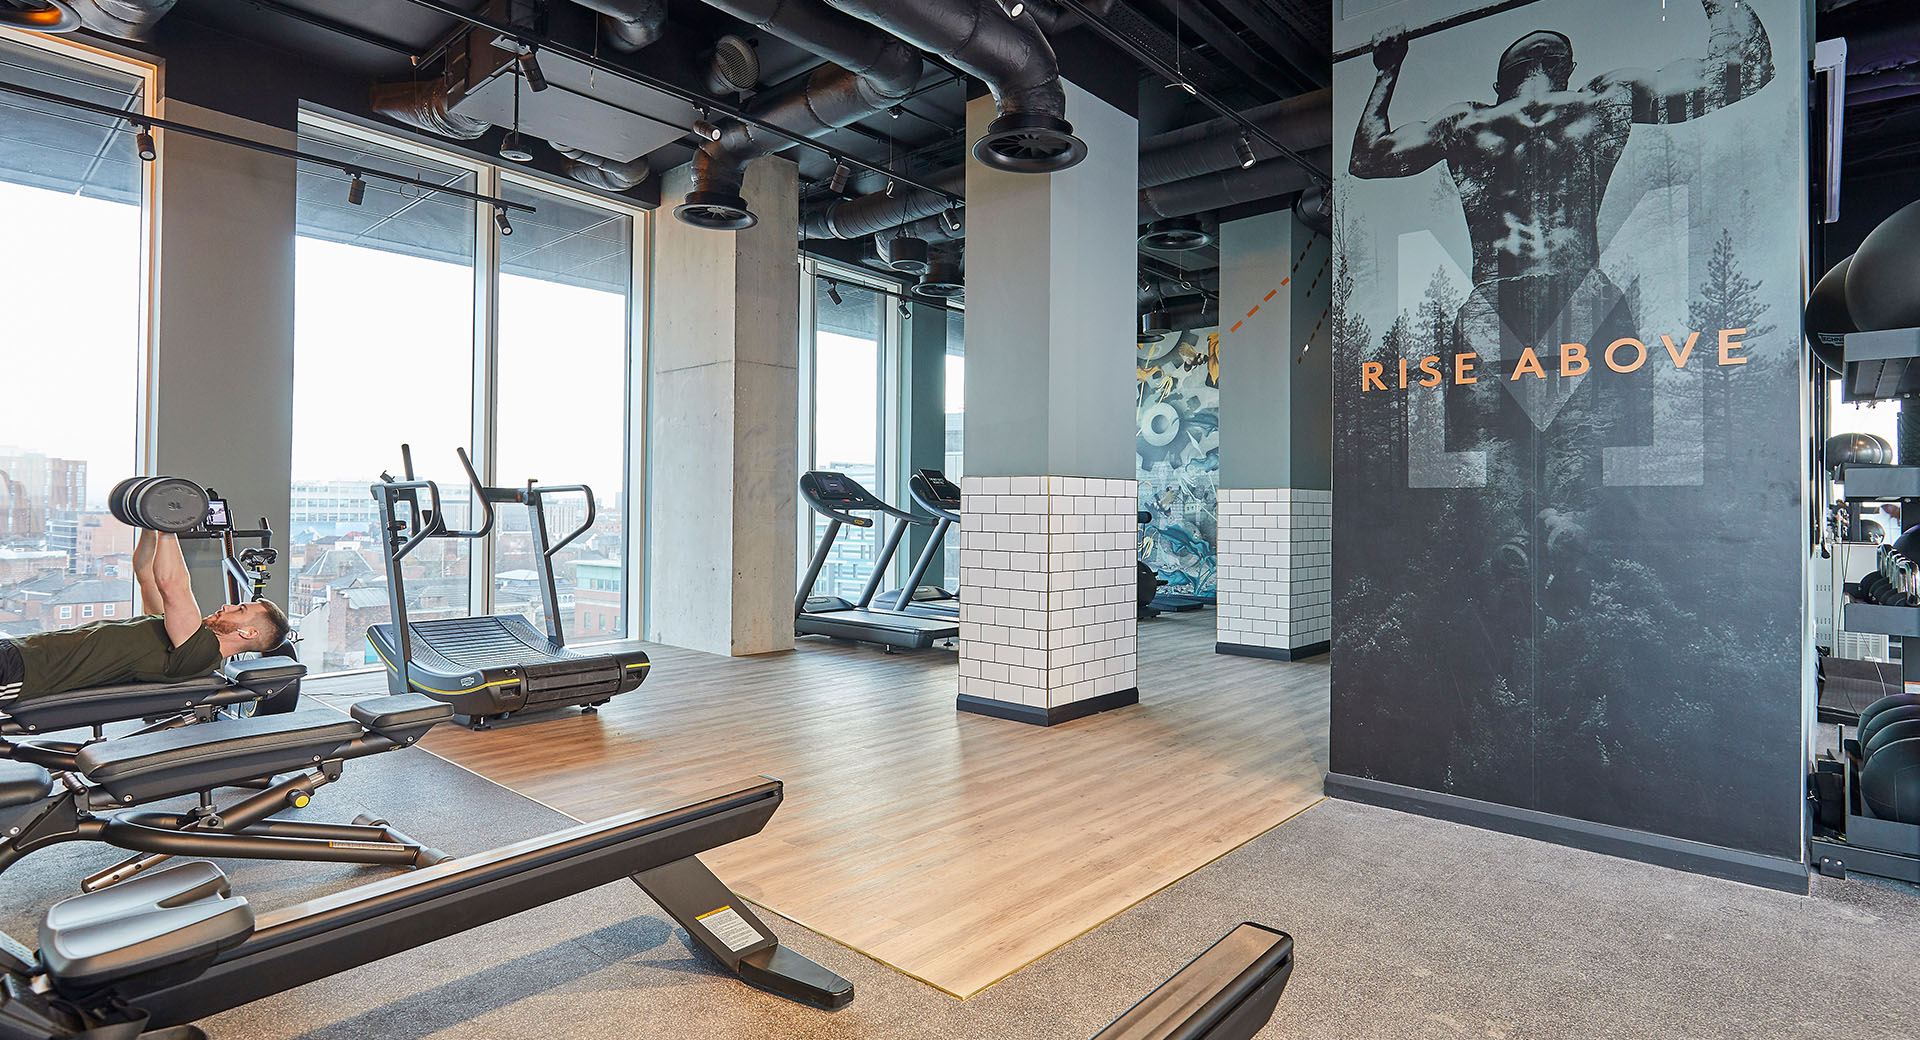 urban style gym with gym equipment and graphic wall